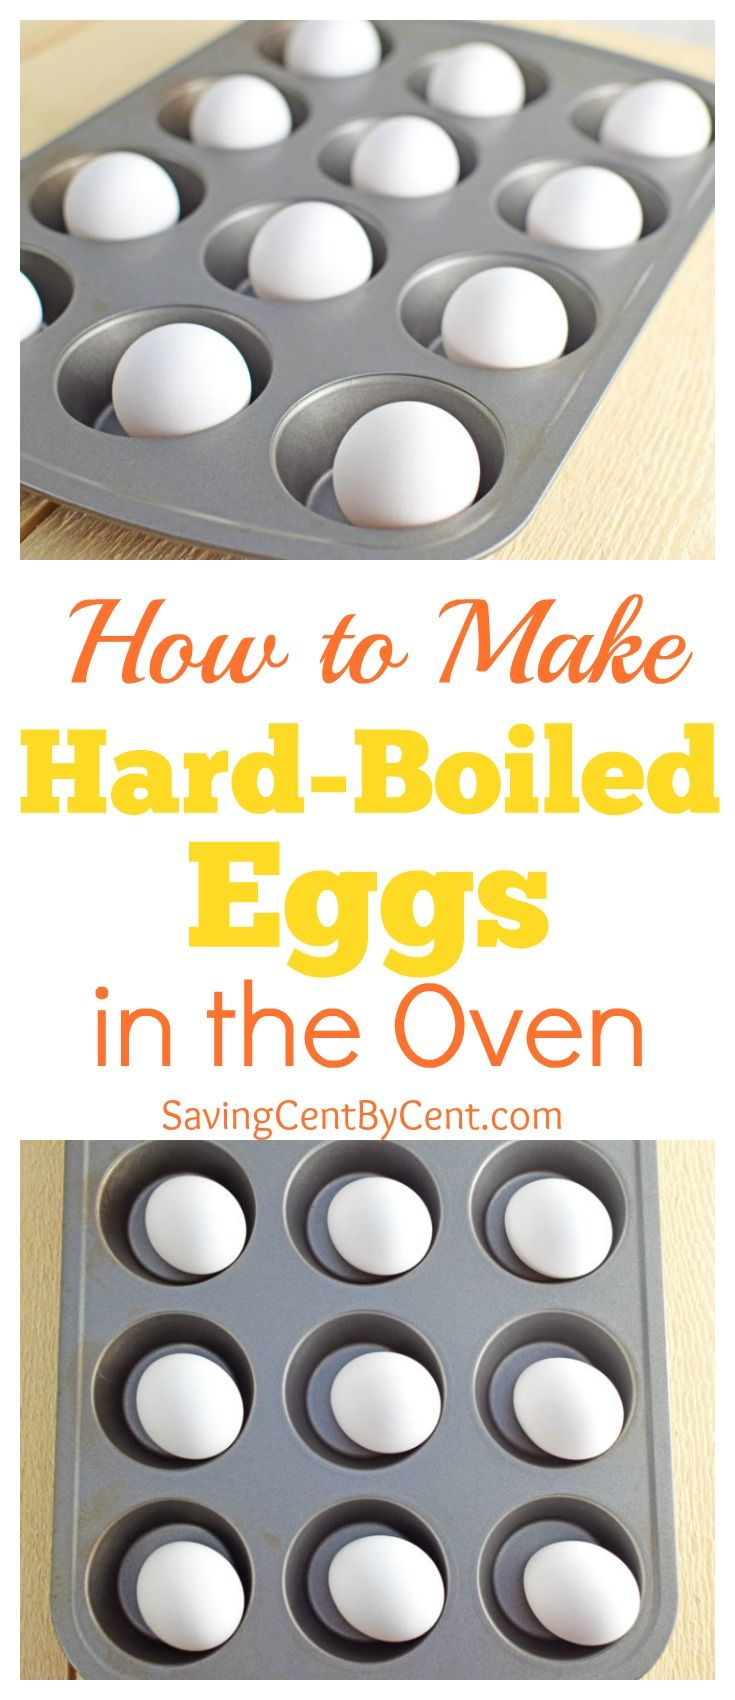 How to Make Hard-Boiled Eggs in the Oven - Saving Cent by Cent